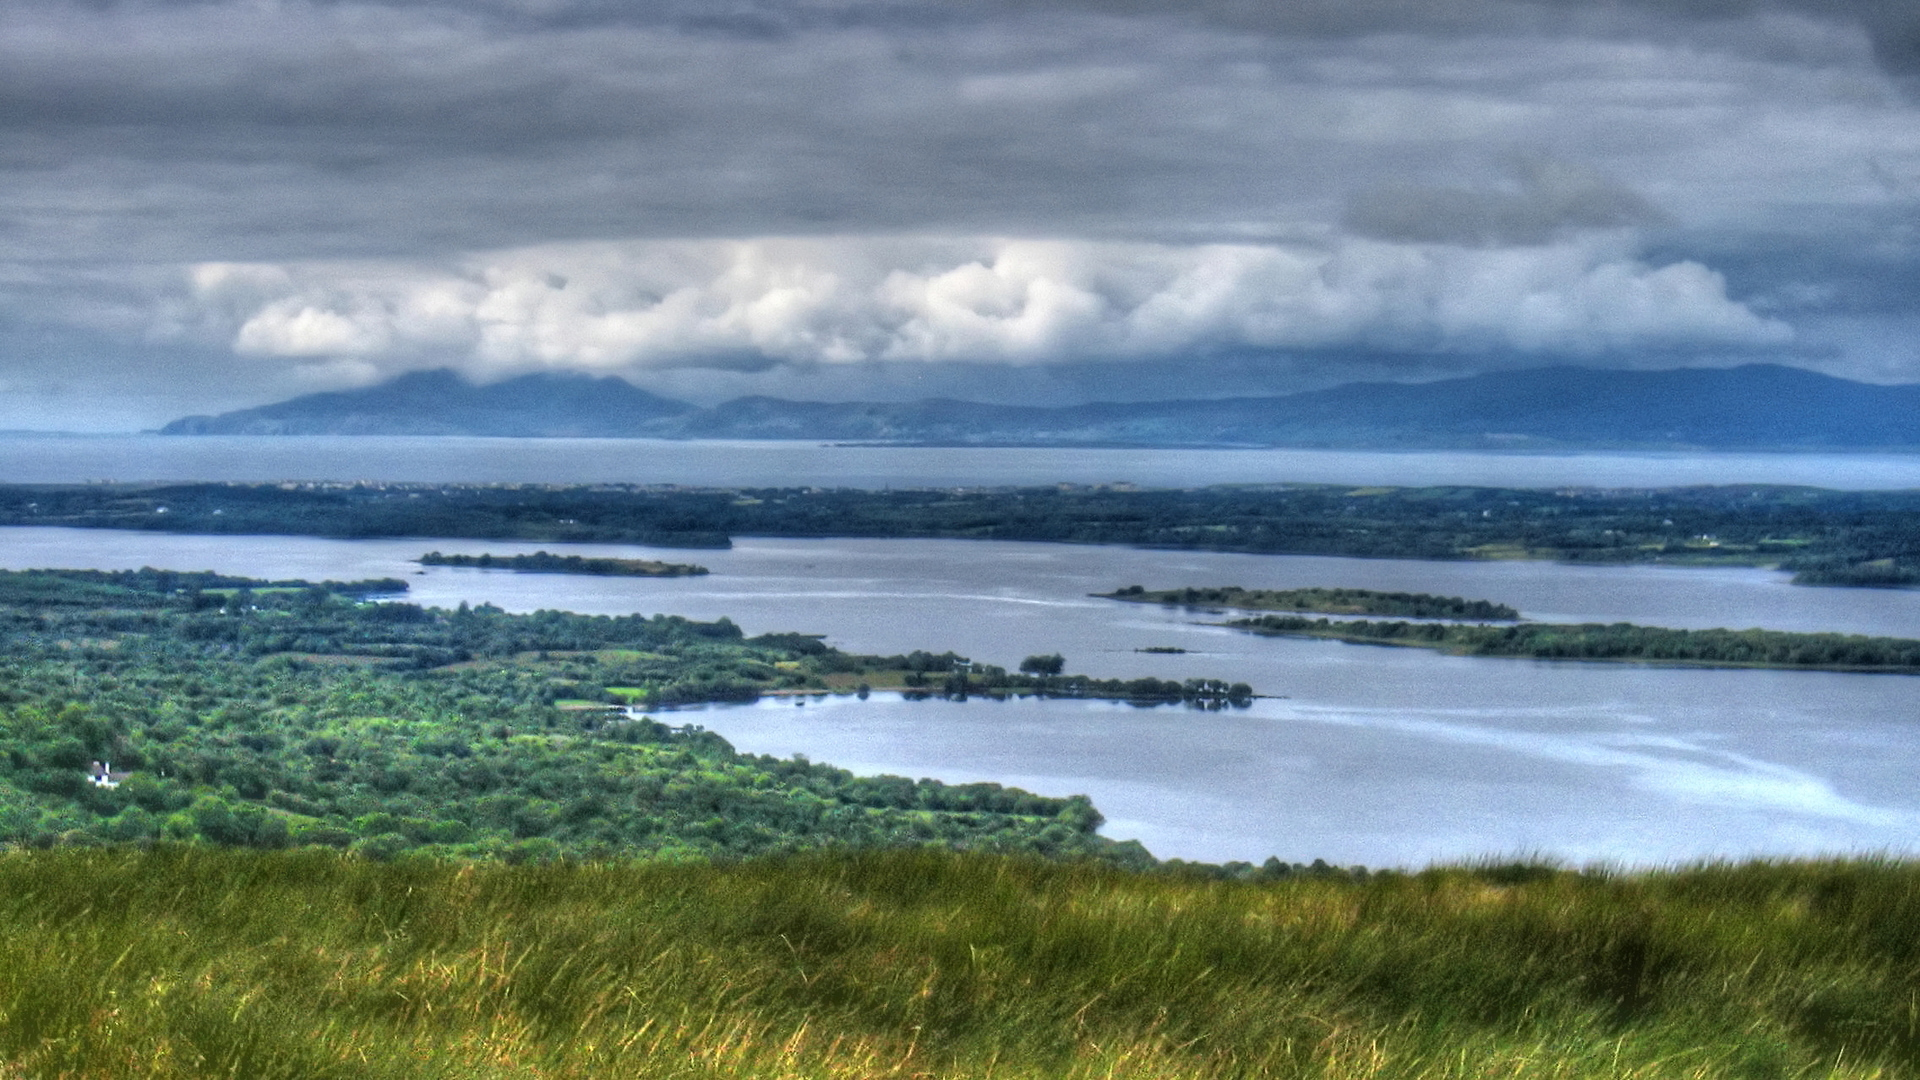 Lough Melvin (middle ground) is separated from Donegal Bay (background) by the Drowes River. Photo Tom Moffatt